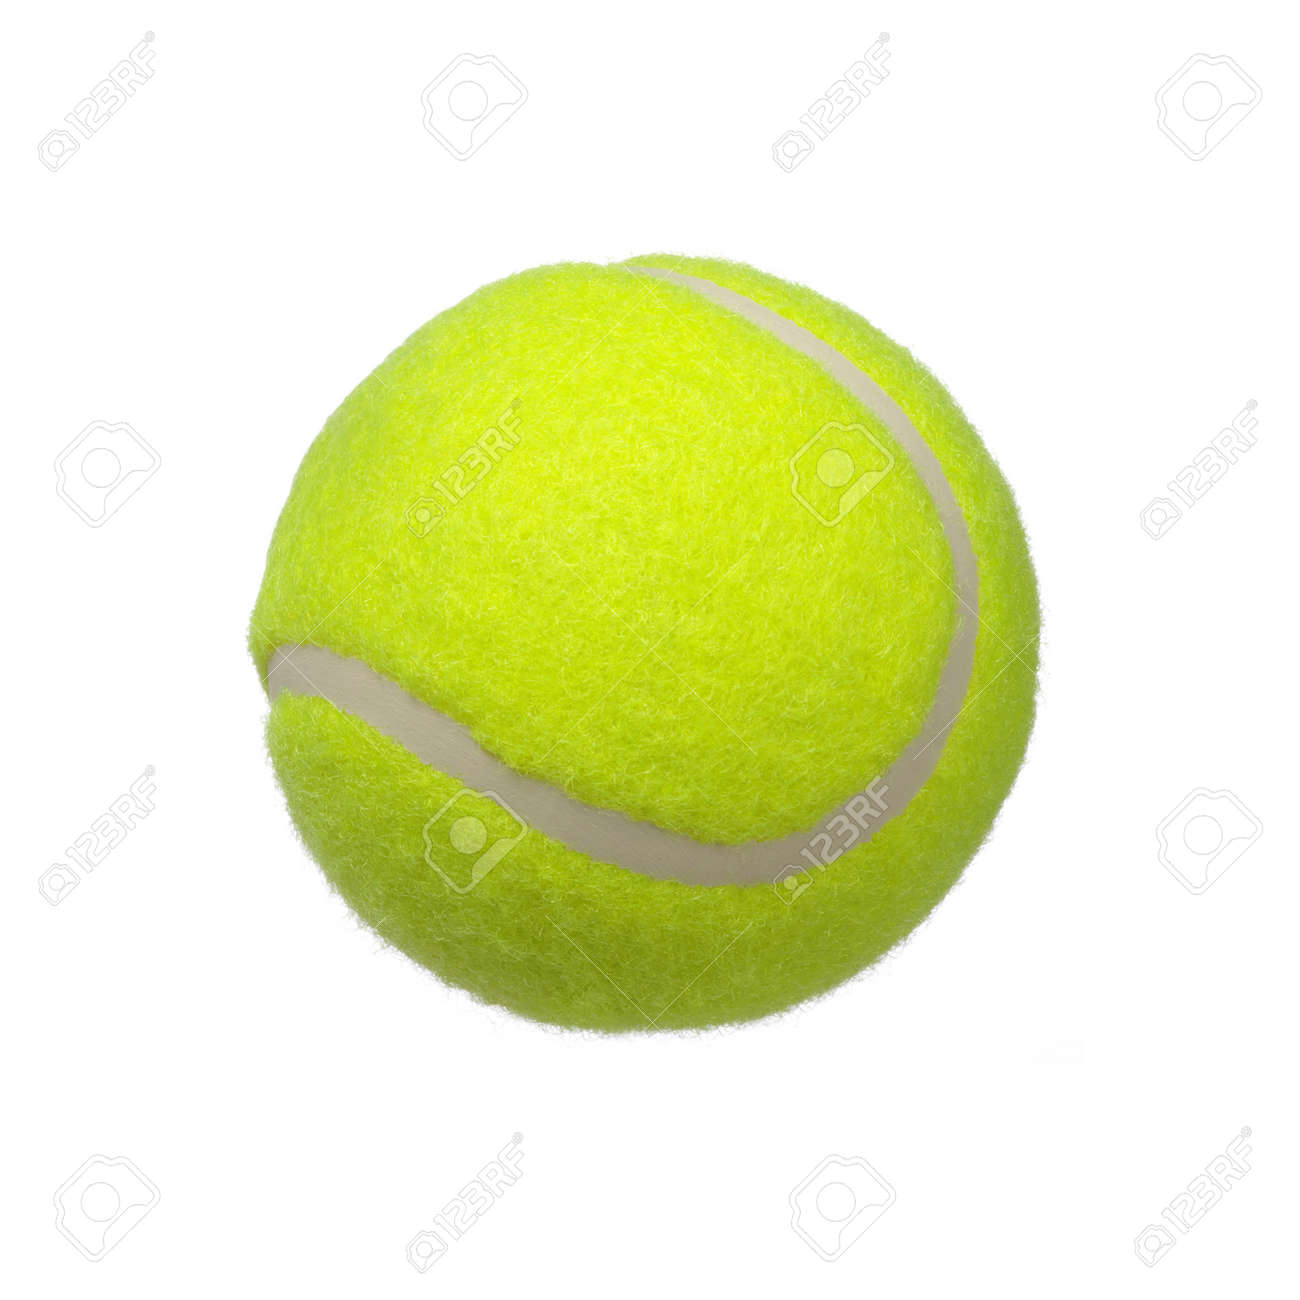 tennis ball isolated on white background Banque d'images - 44674853